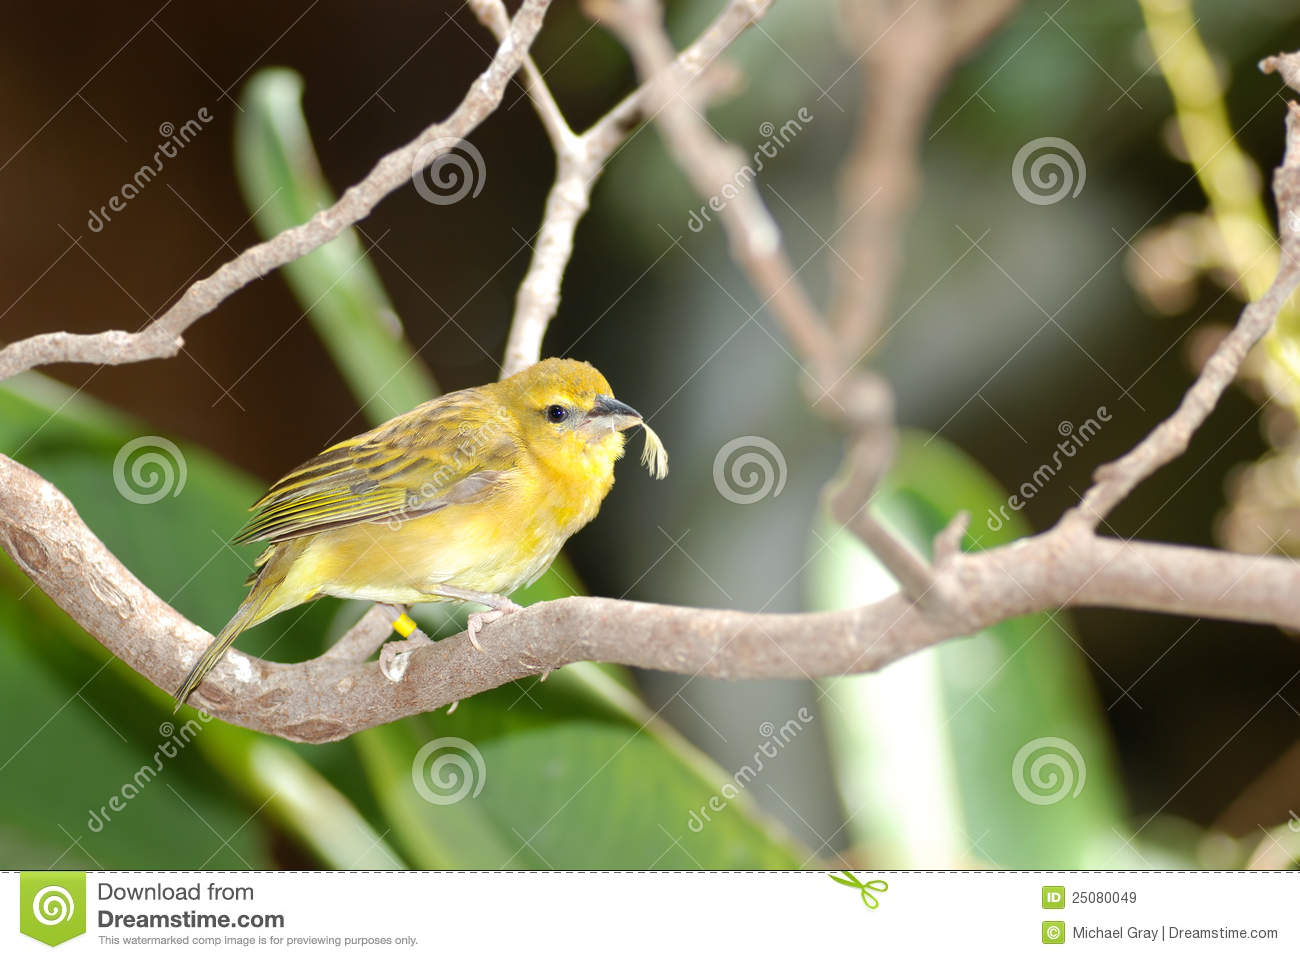 Grassland Yellow Finch with feather in beak